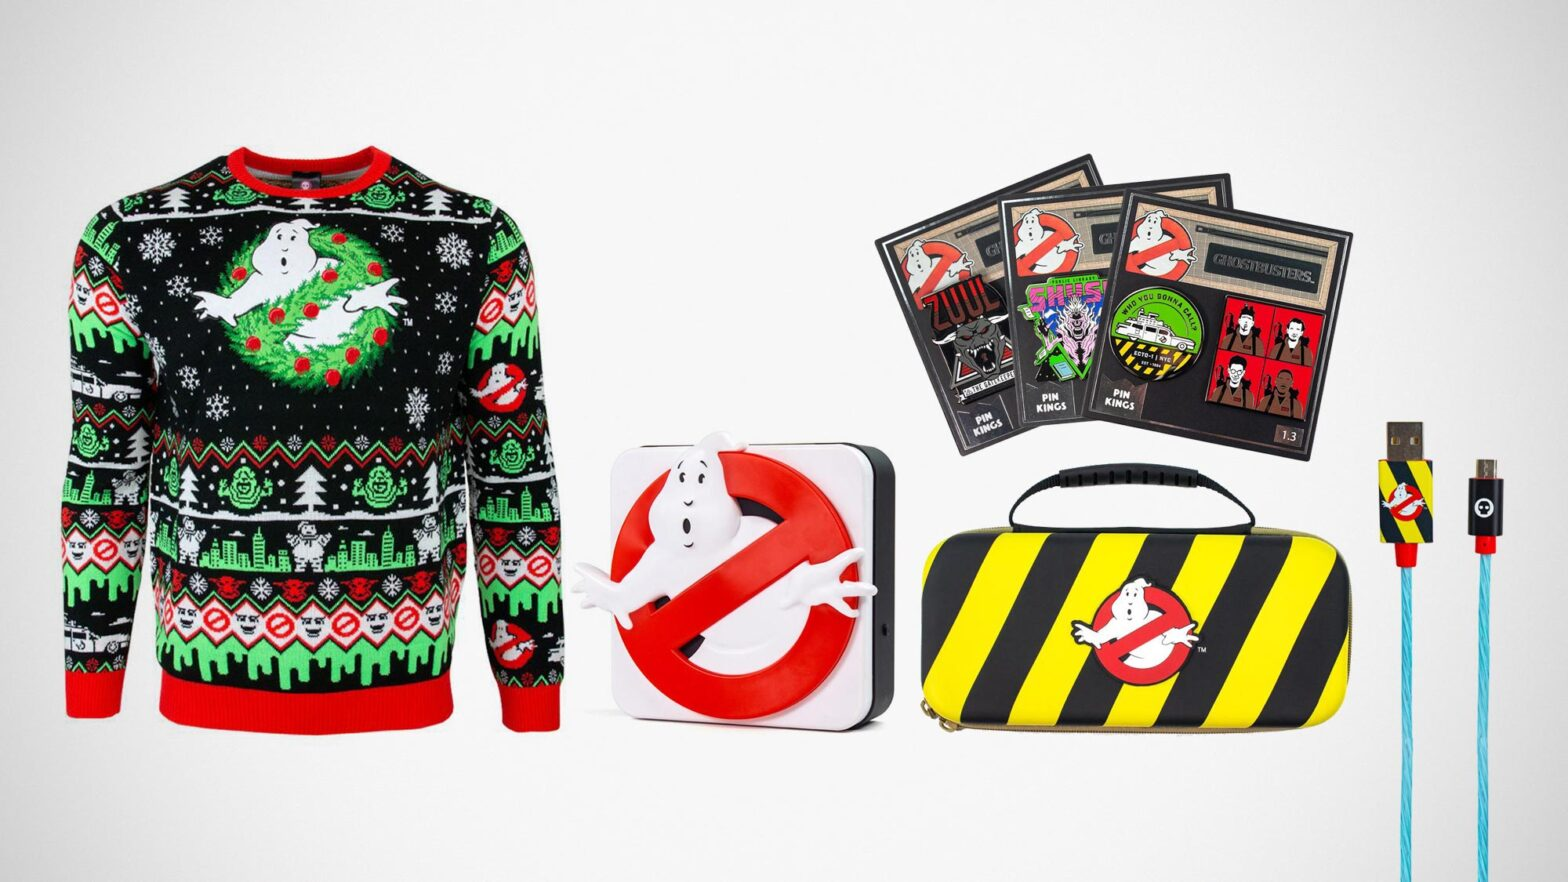 New Official Ghostbusters Merchandises